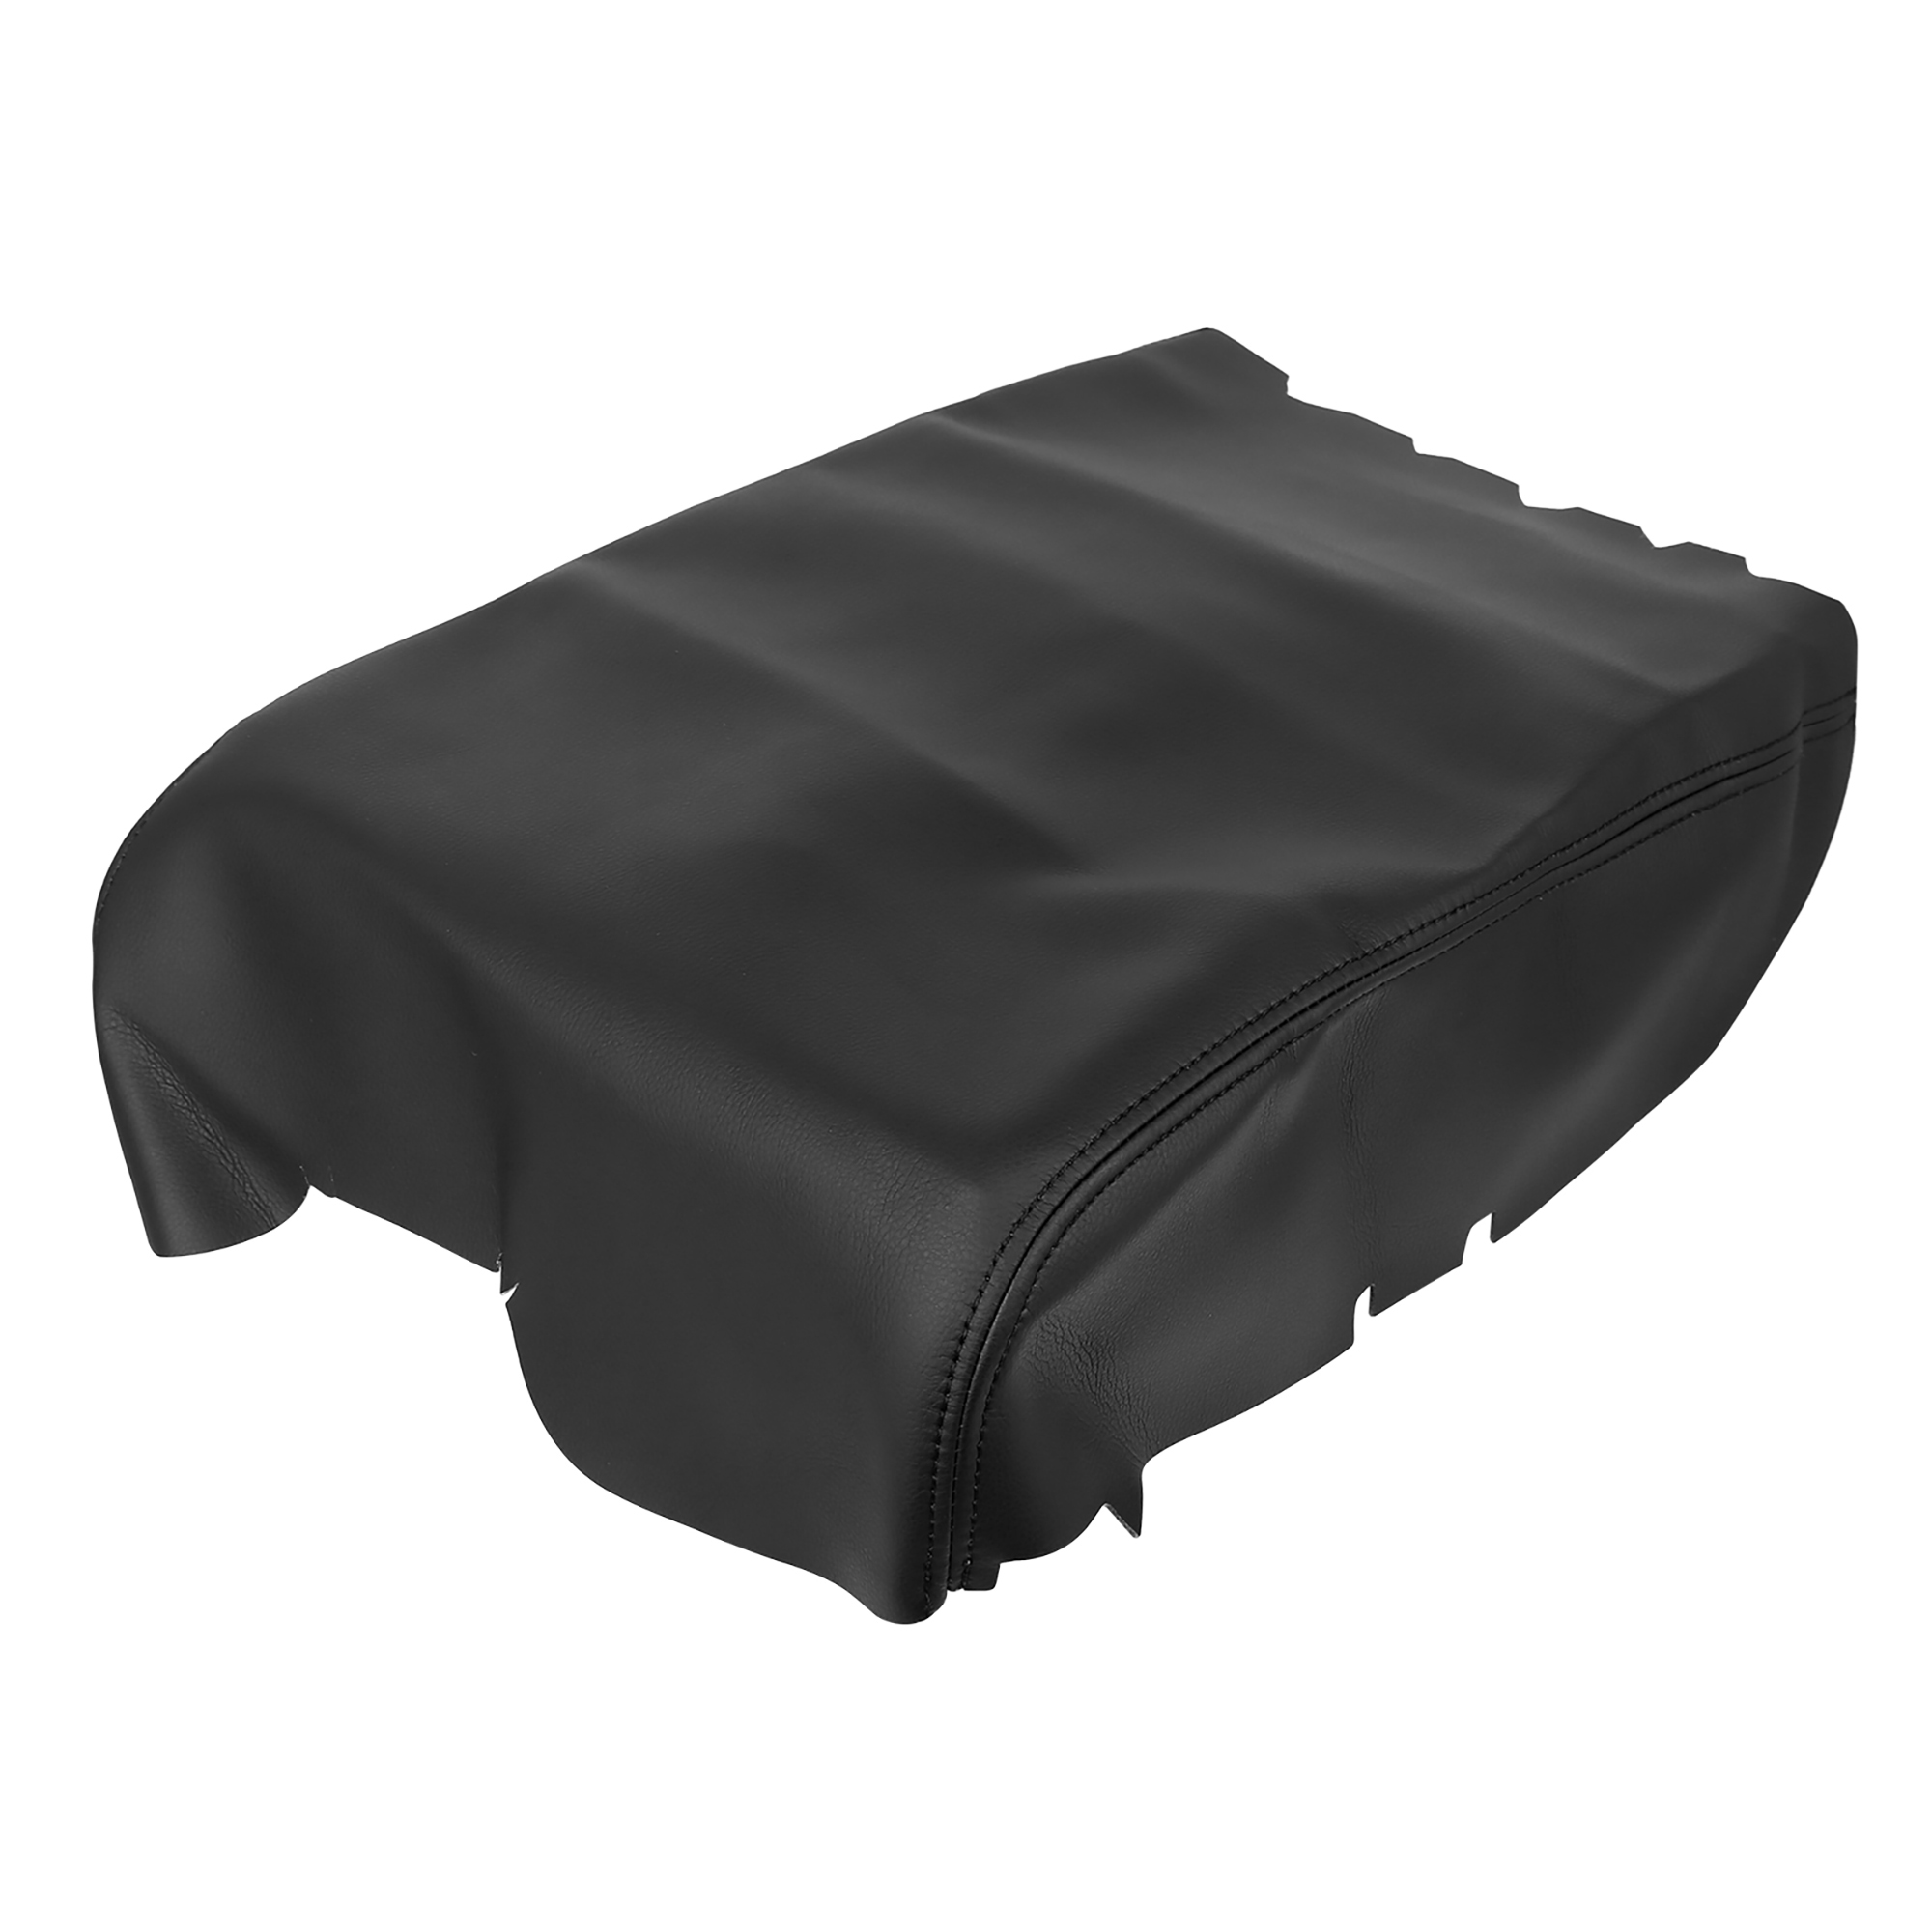 Car Center Console Lid Armrest Pad Cover Black for Toyota Tundra 2008-2013